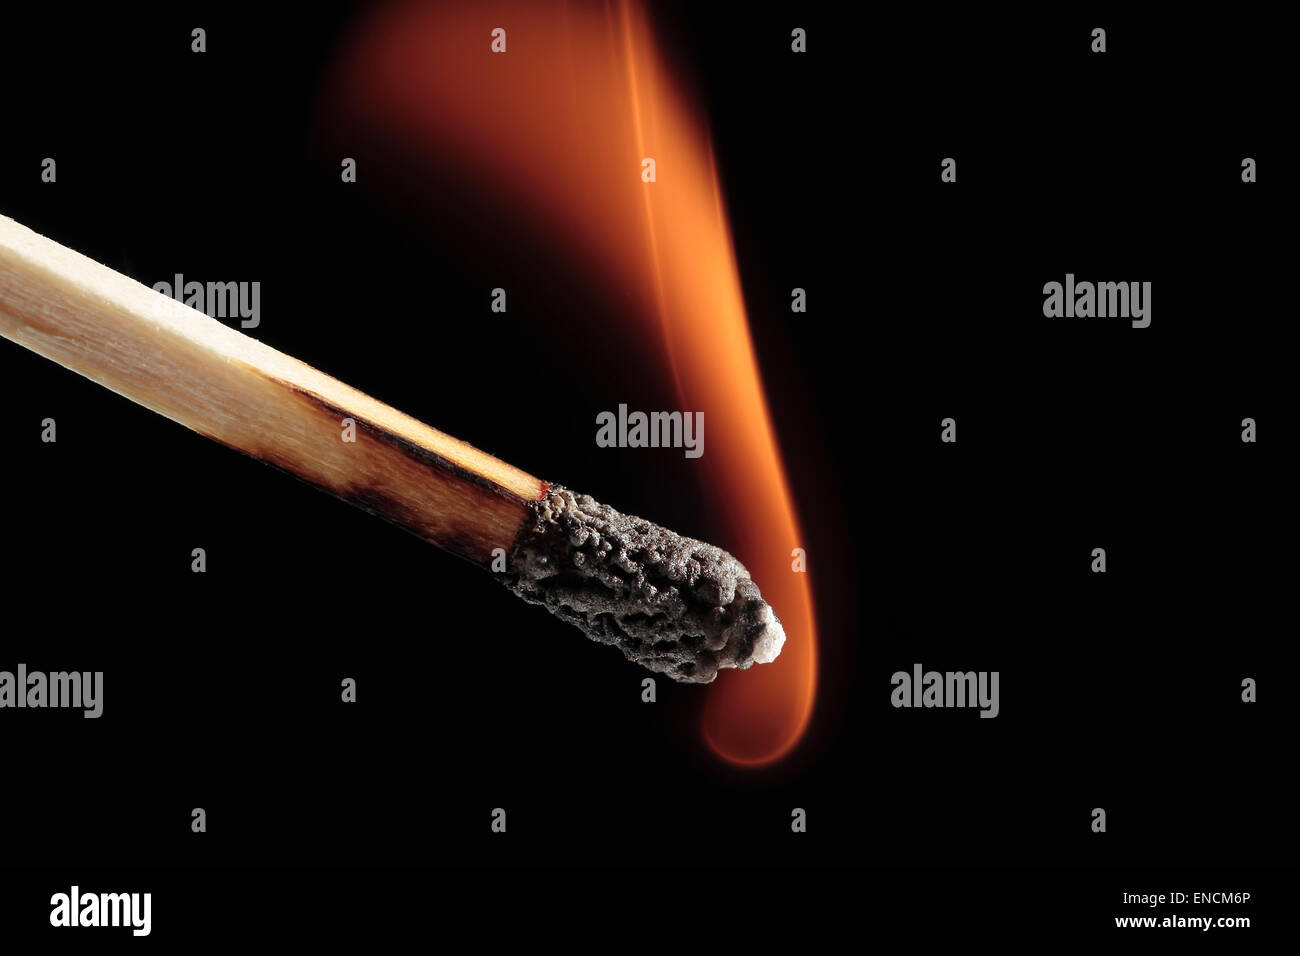 closeup of a burning matchstick on black background - Stock Image